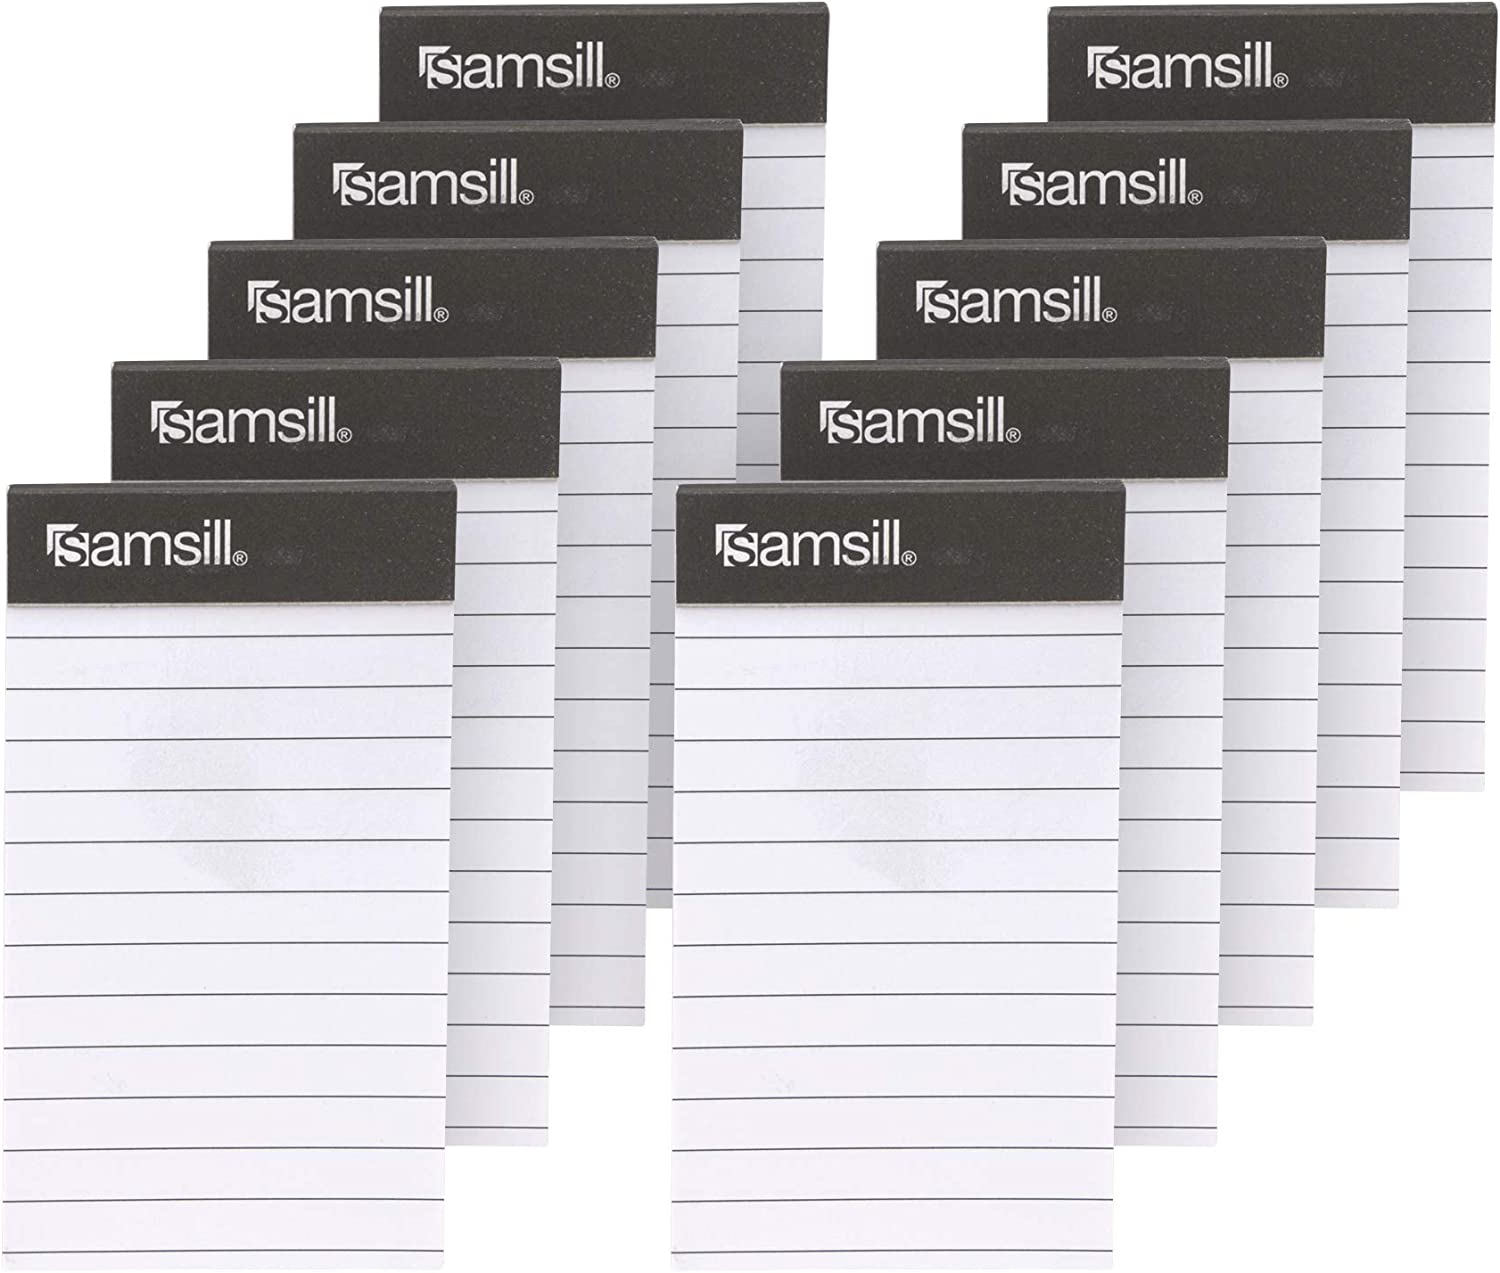 """Samsill Mini Pocket Notebook Refills/Memo Book Refills / 10 Pack 2 7/16"""" x 4 ¼"""" Sized Writing Pad with 40 Lined Paper Per Note Pad"""